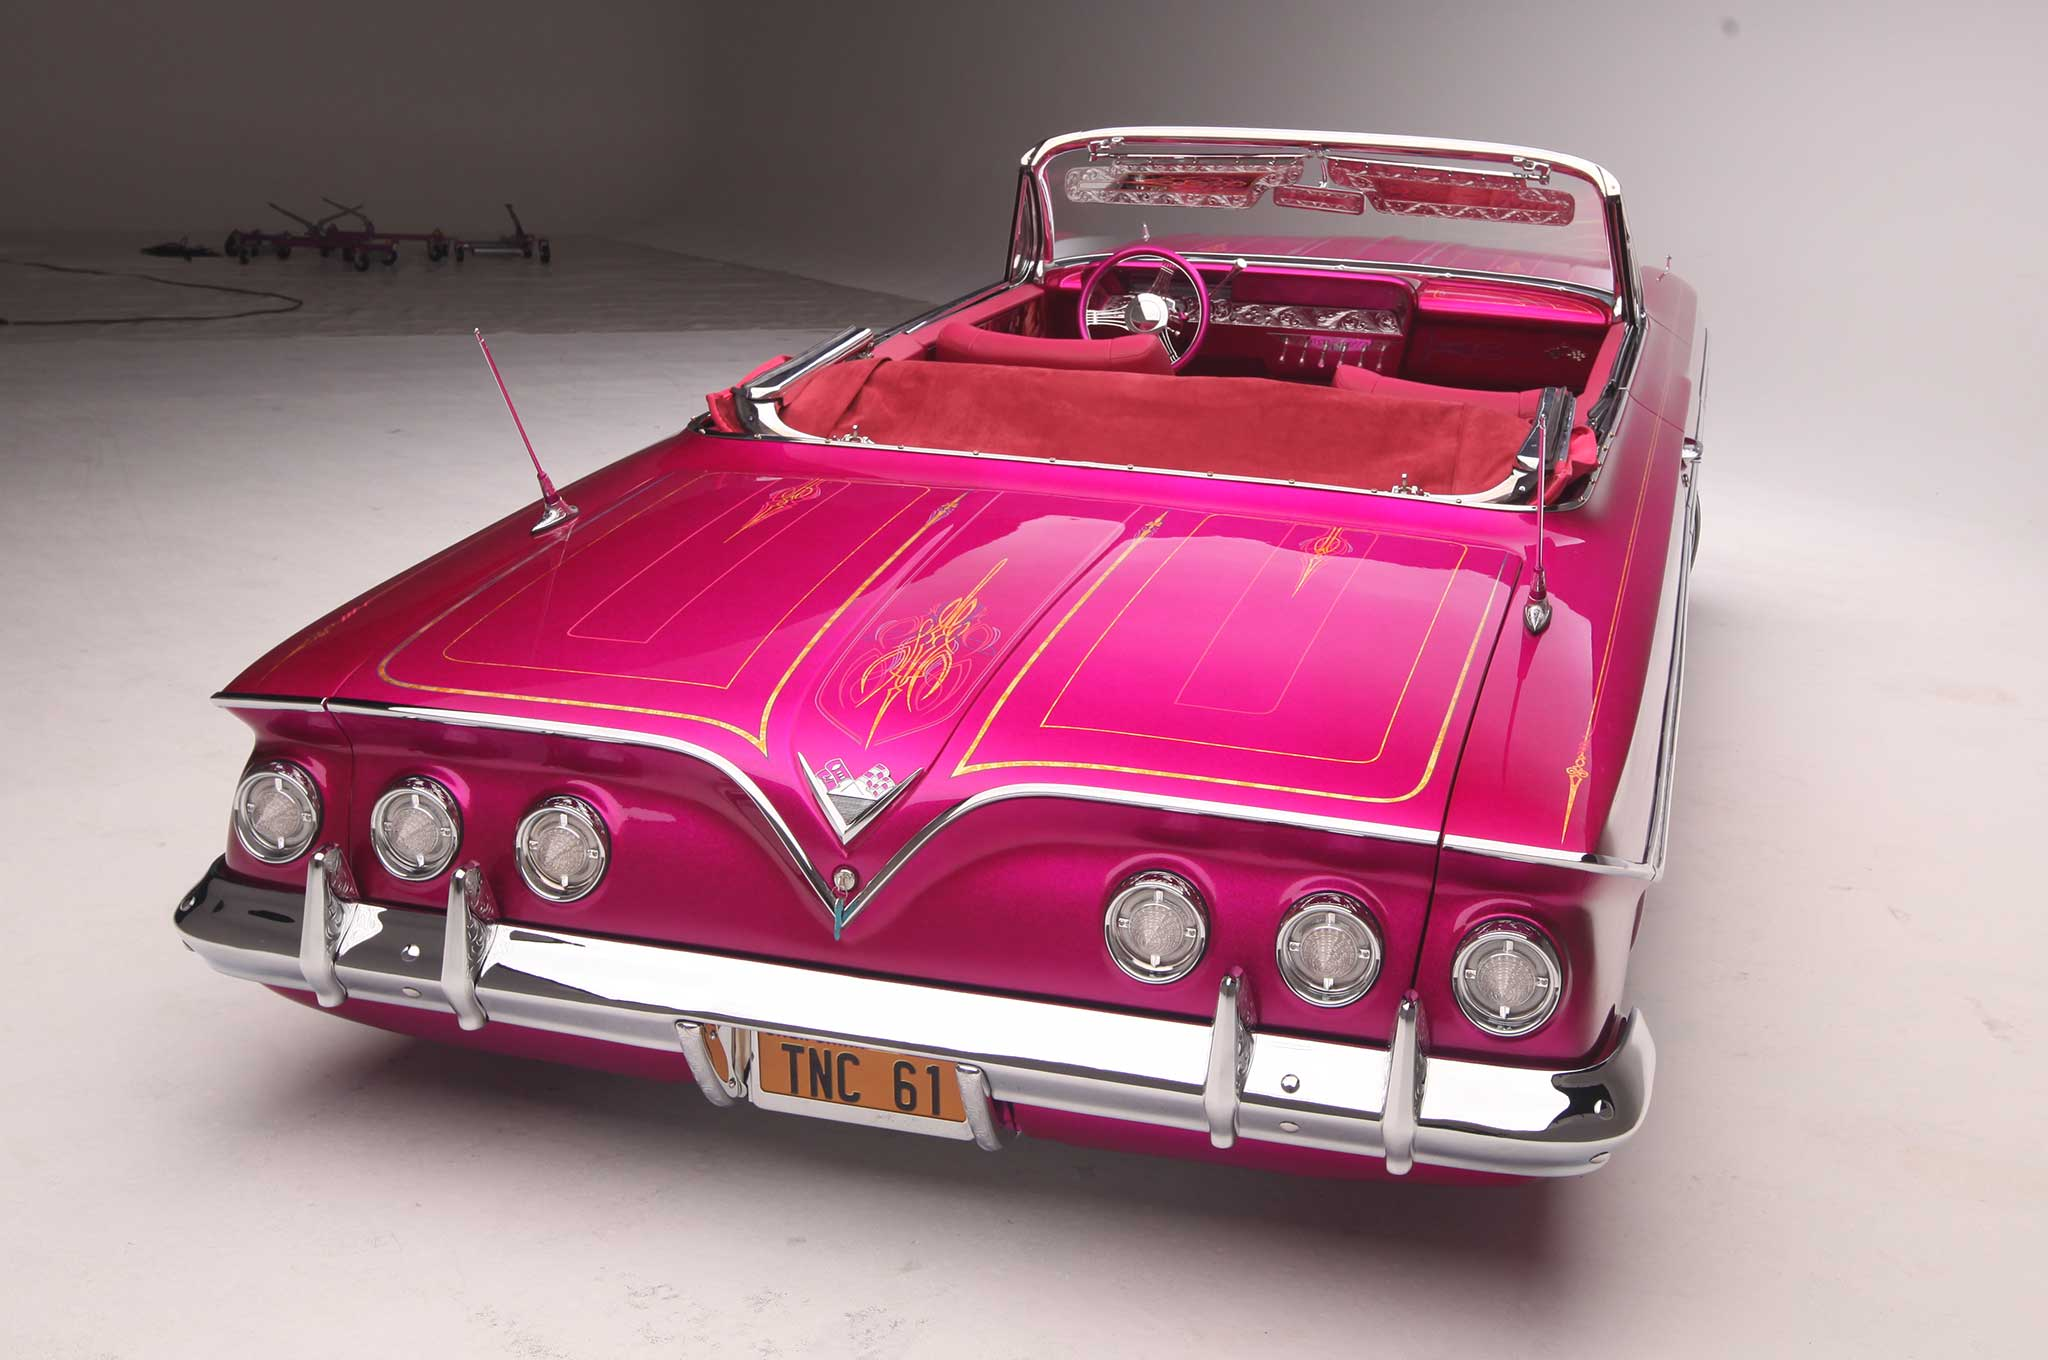 1961 Chevrolet Impala Convertible - The Sweet Life - Lowrider